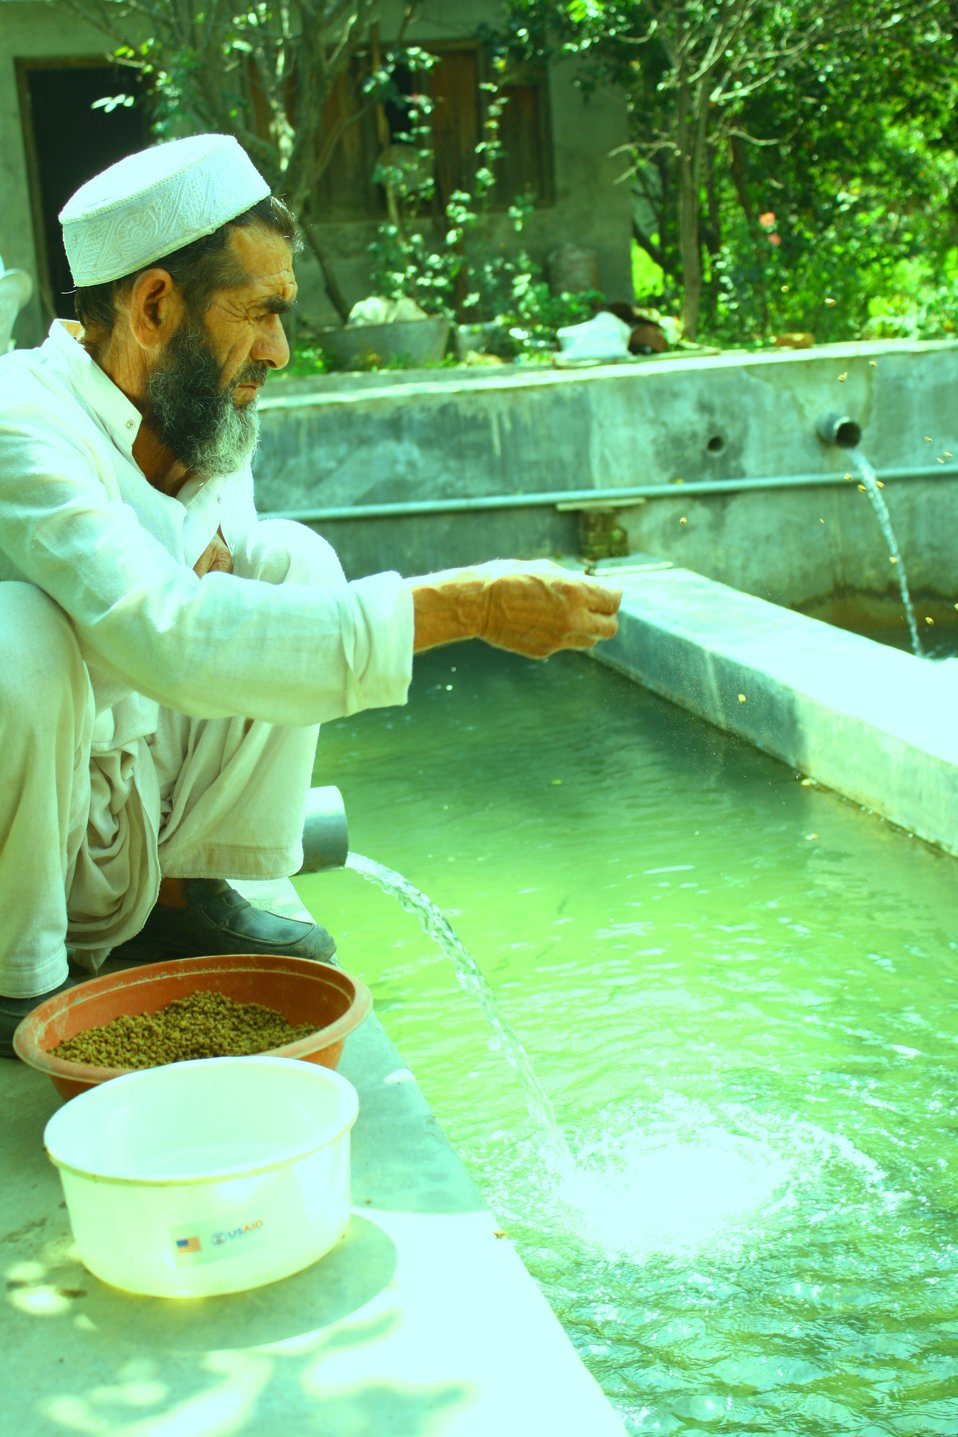 USAID helps rehabilitate hotels and fish farms in battered Swat Valley - 1